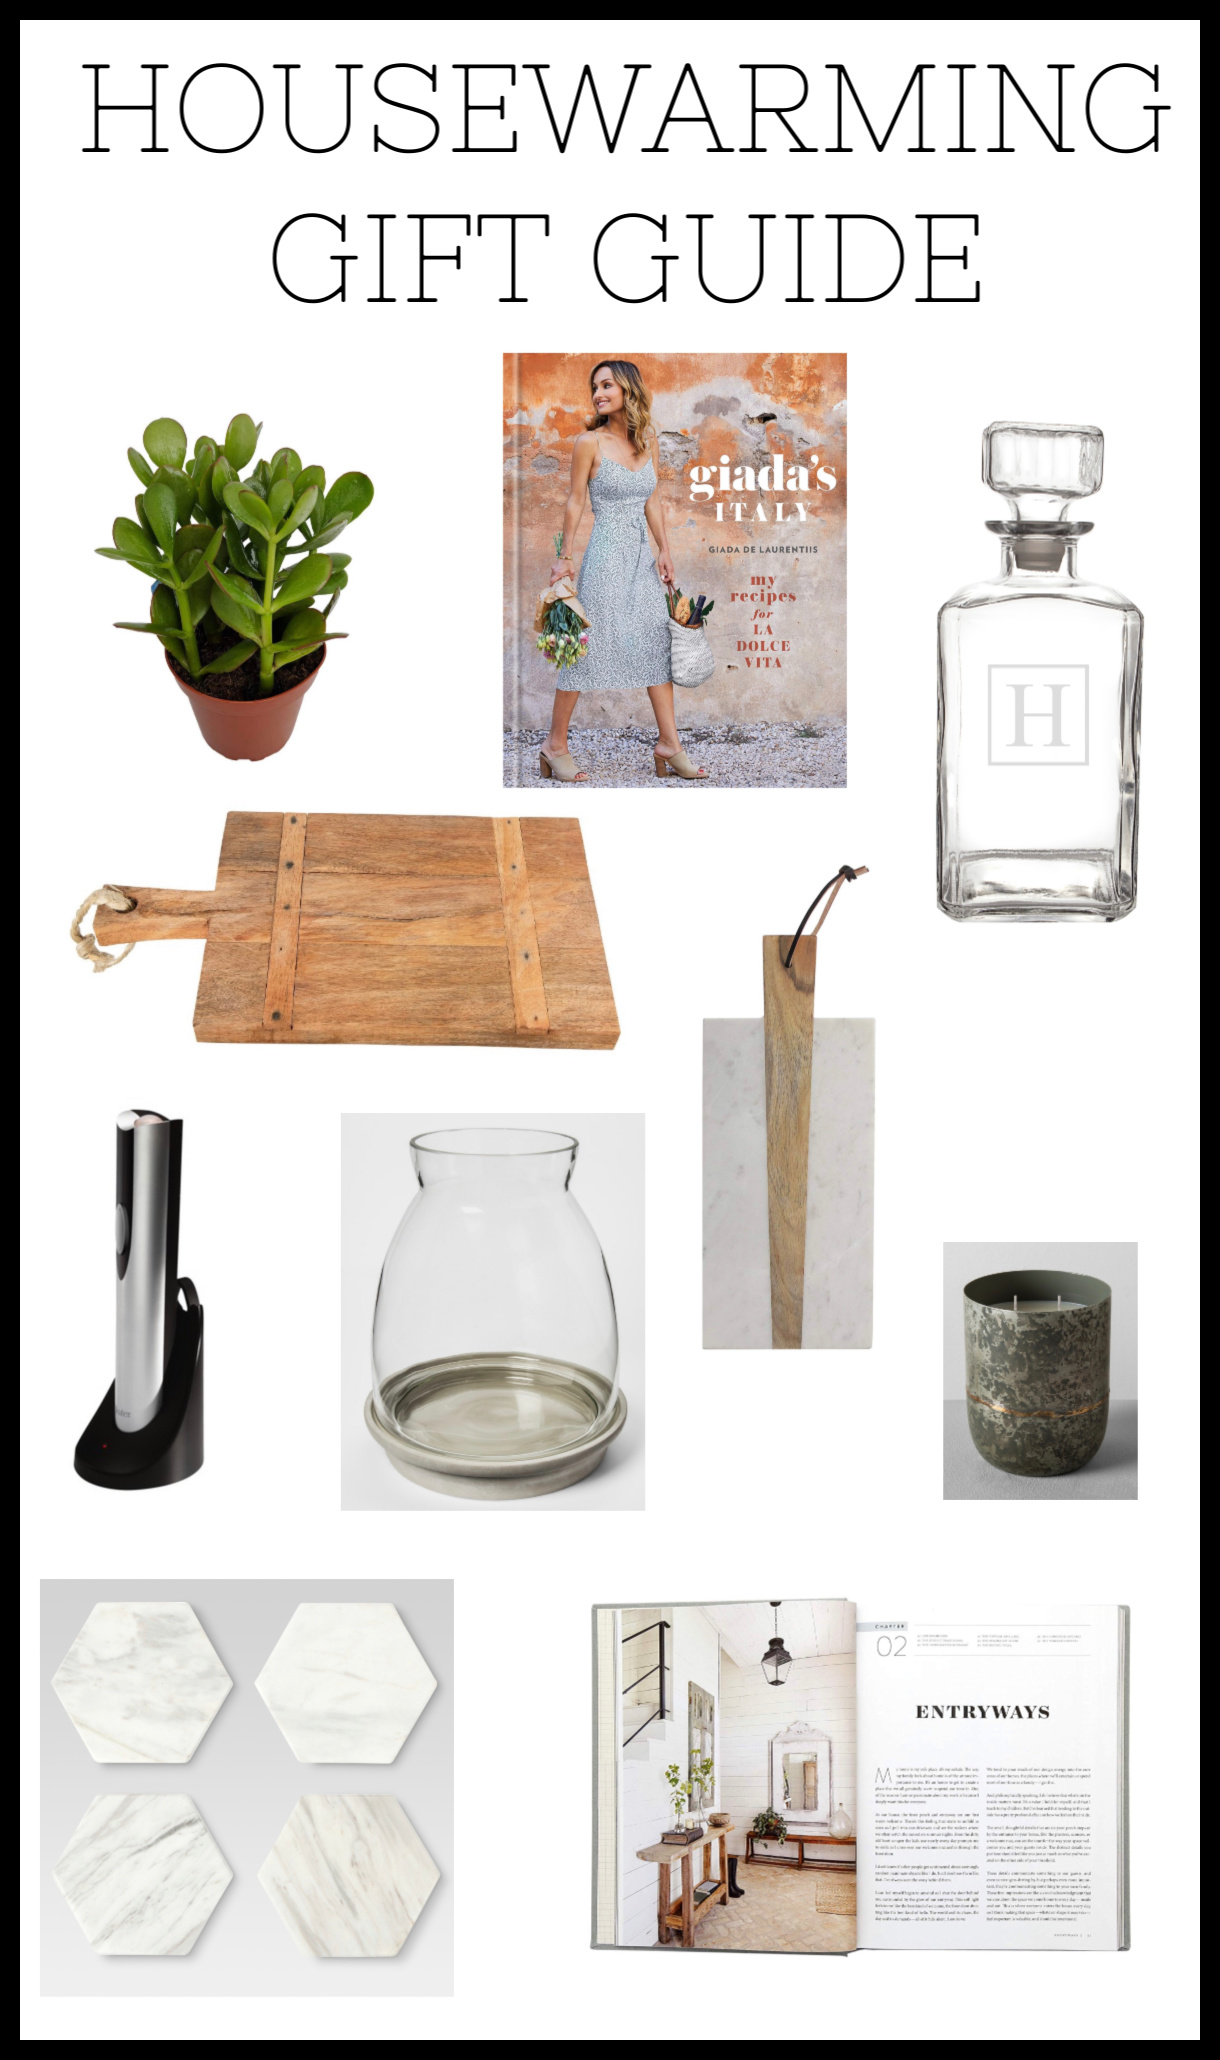 Housewarming Gift Guide.jpg